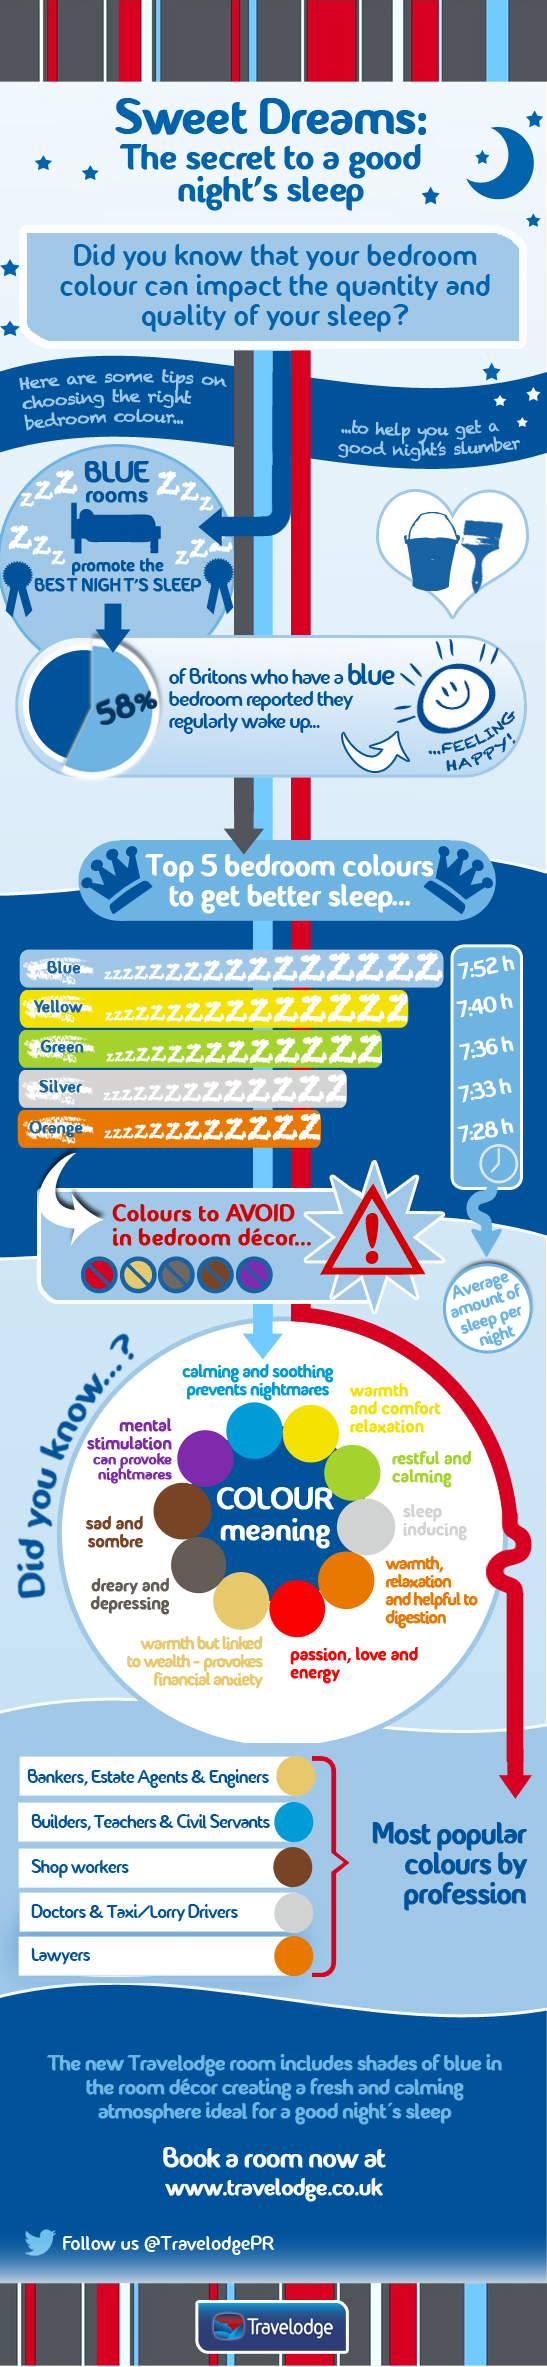 Travelodge-Bedroom-Colour-Infographic